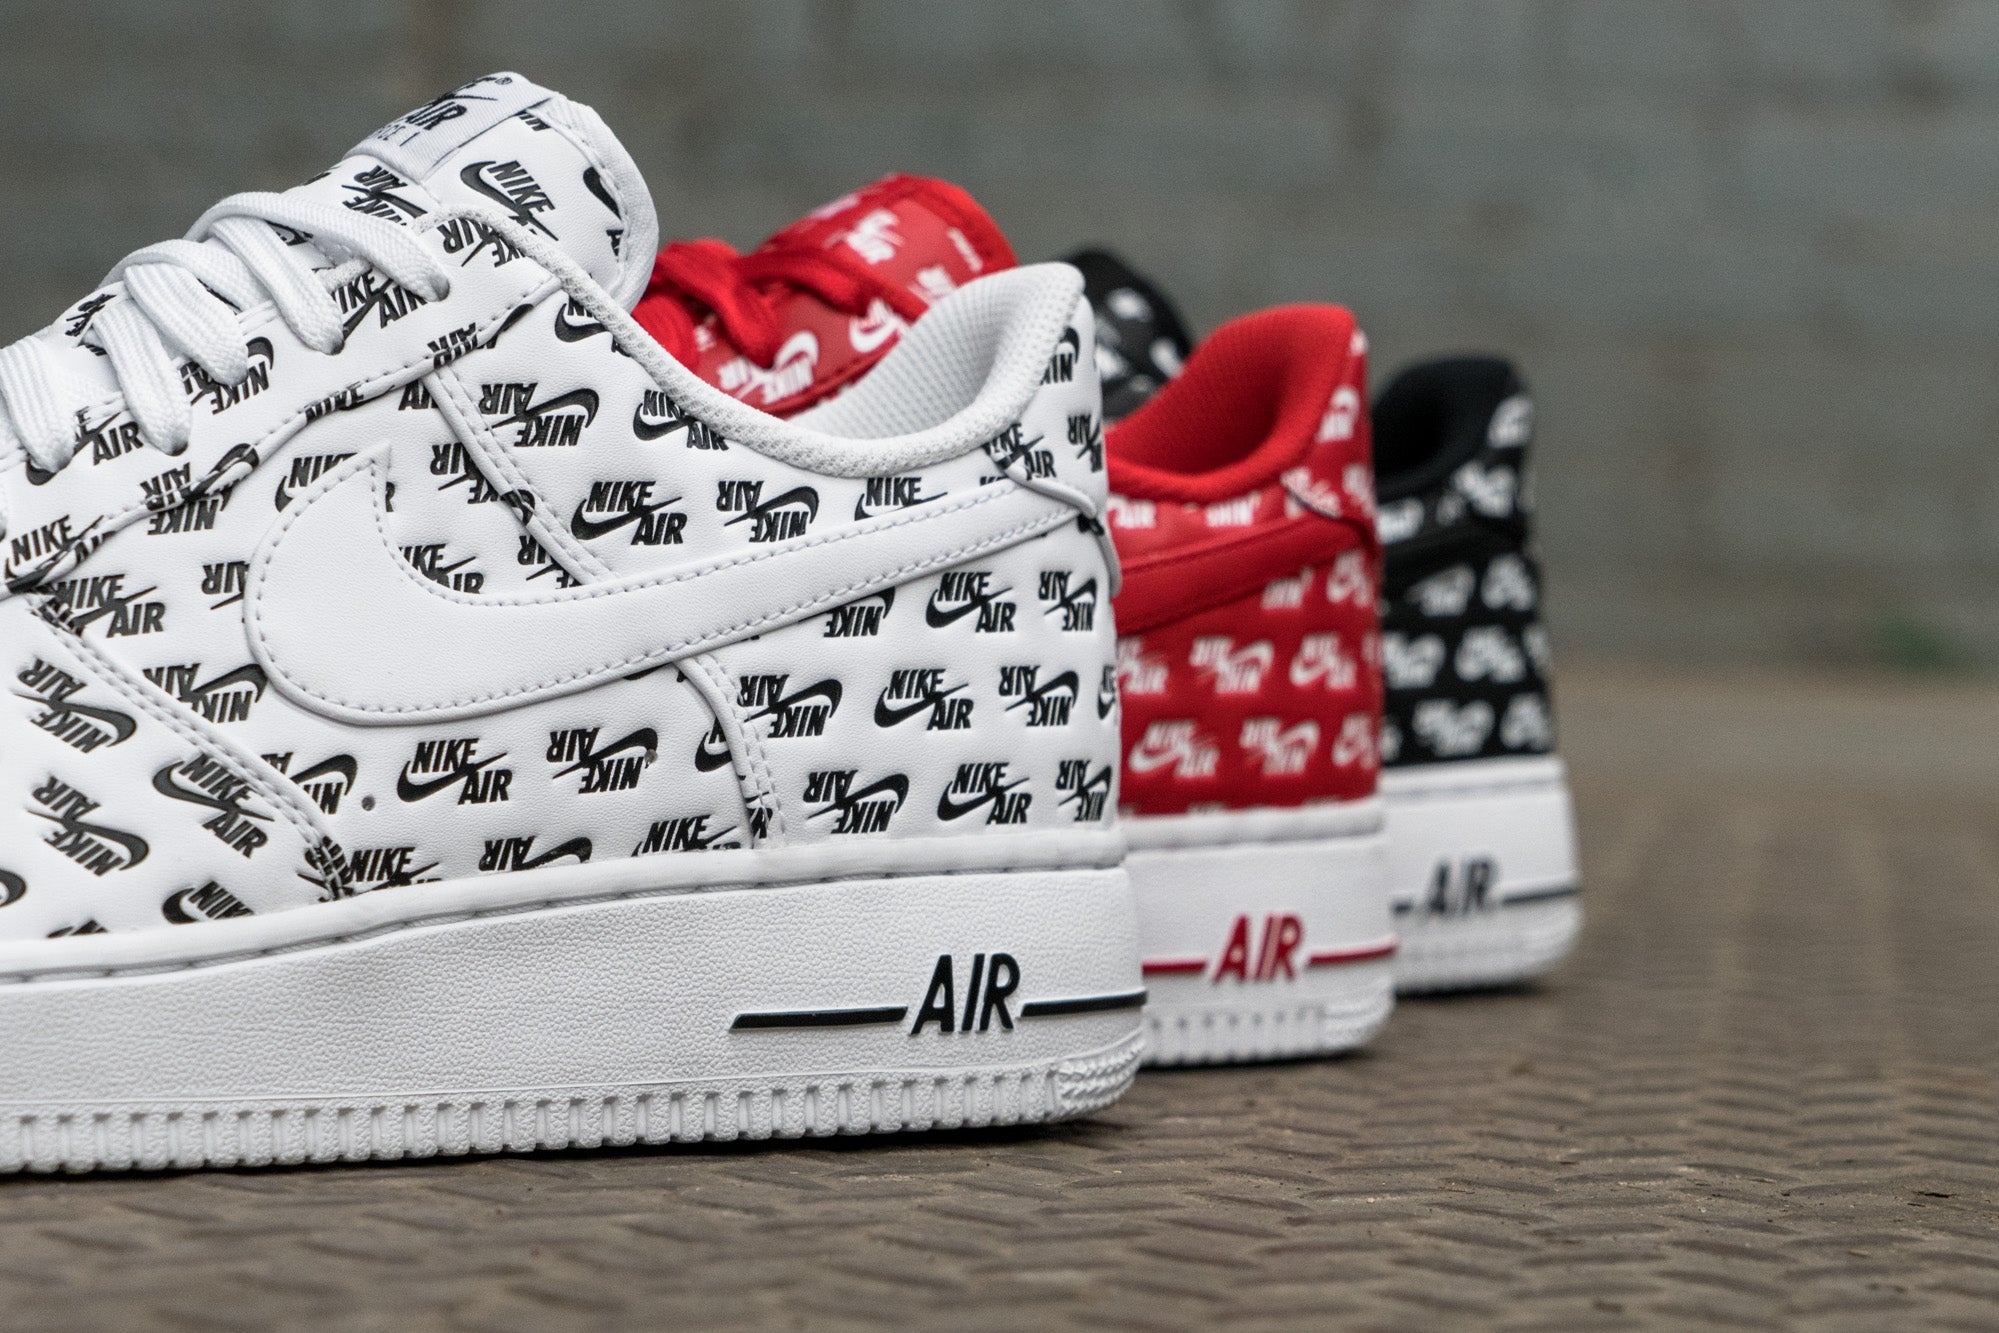 b0642a28a Nike Air Force 1 'Air Emblazoned' Pack at Notre